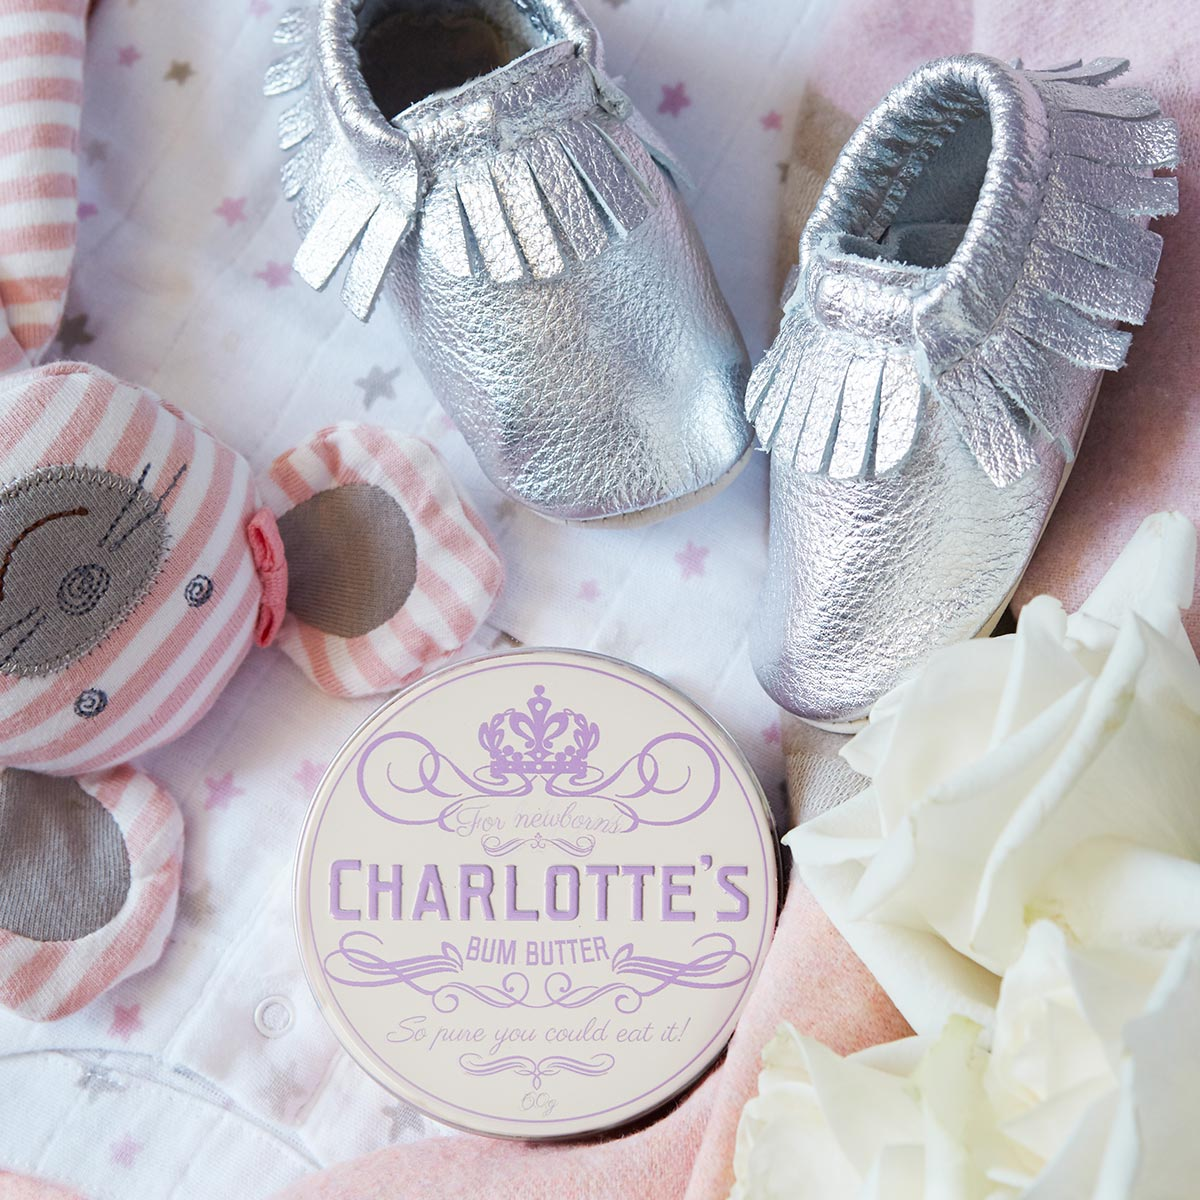 Charlotte's Bum Butter baby skin care